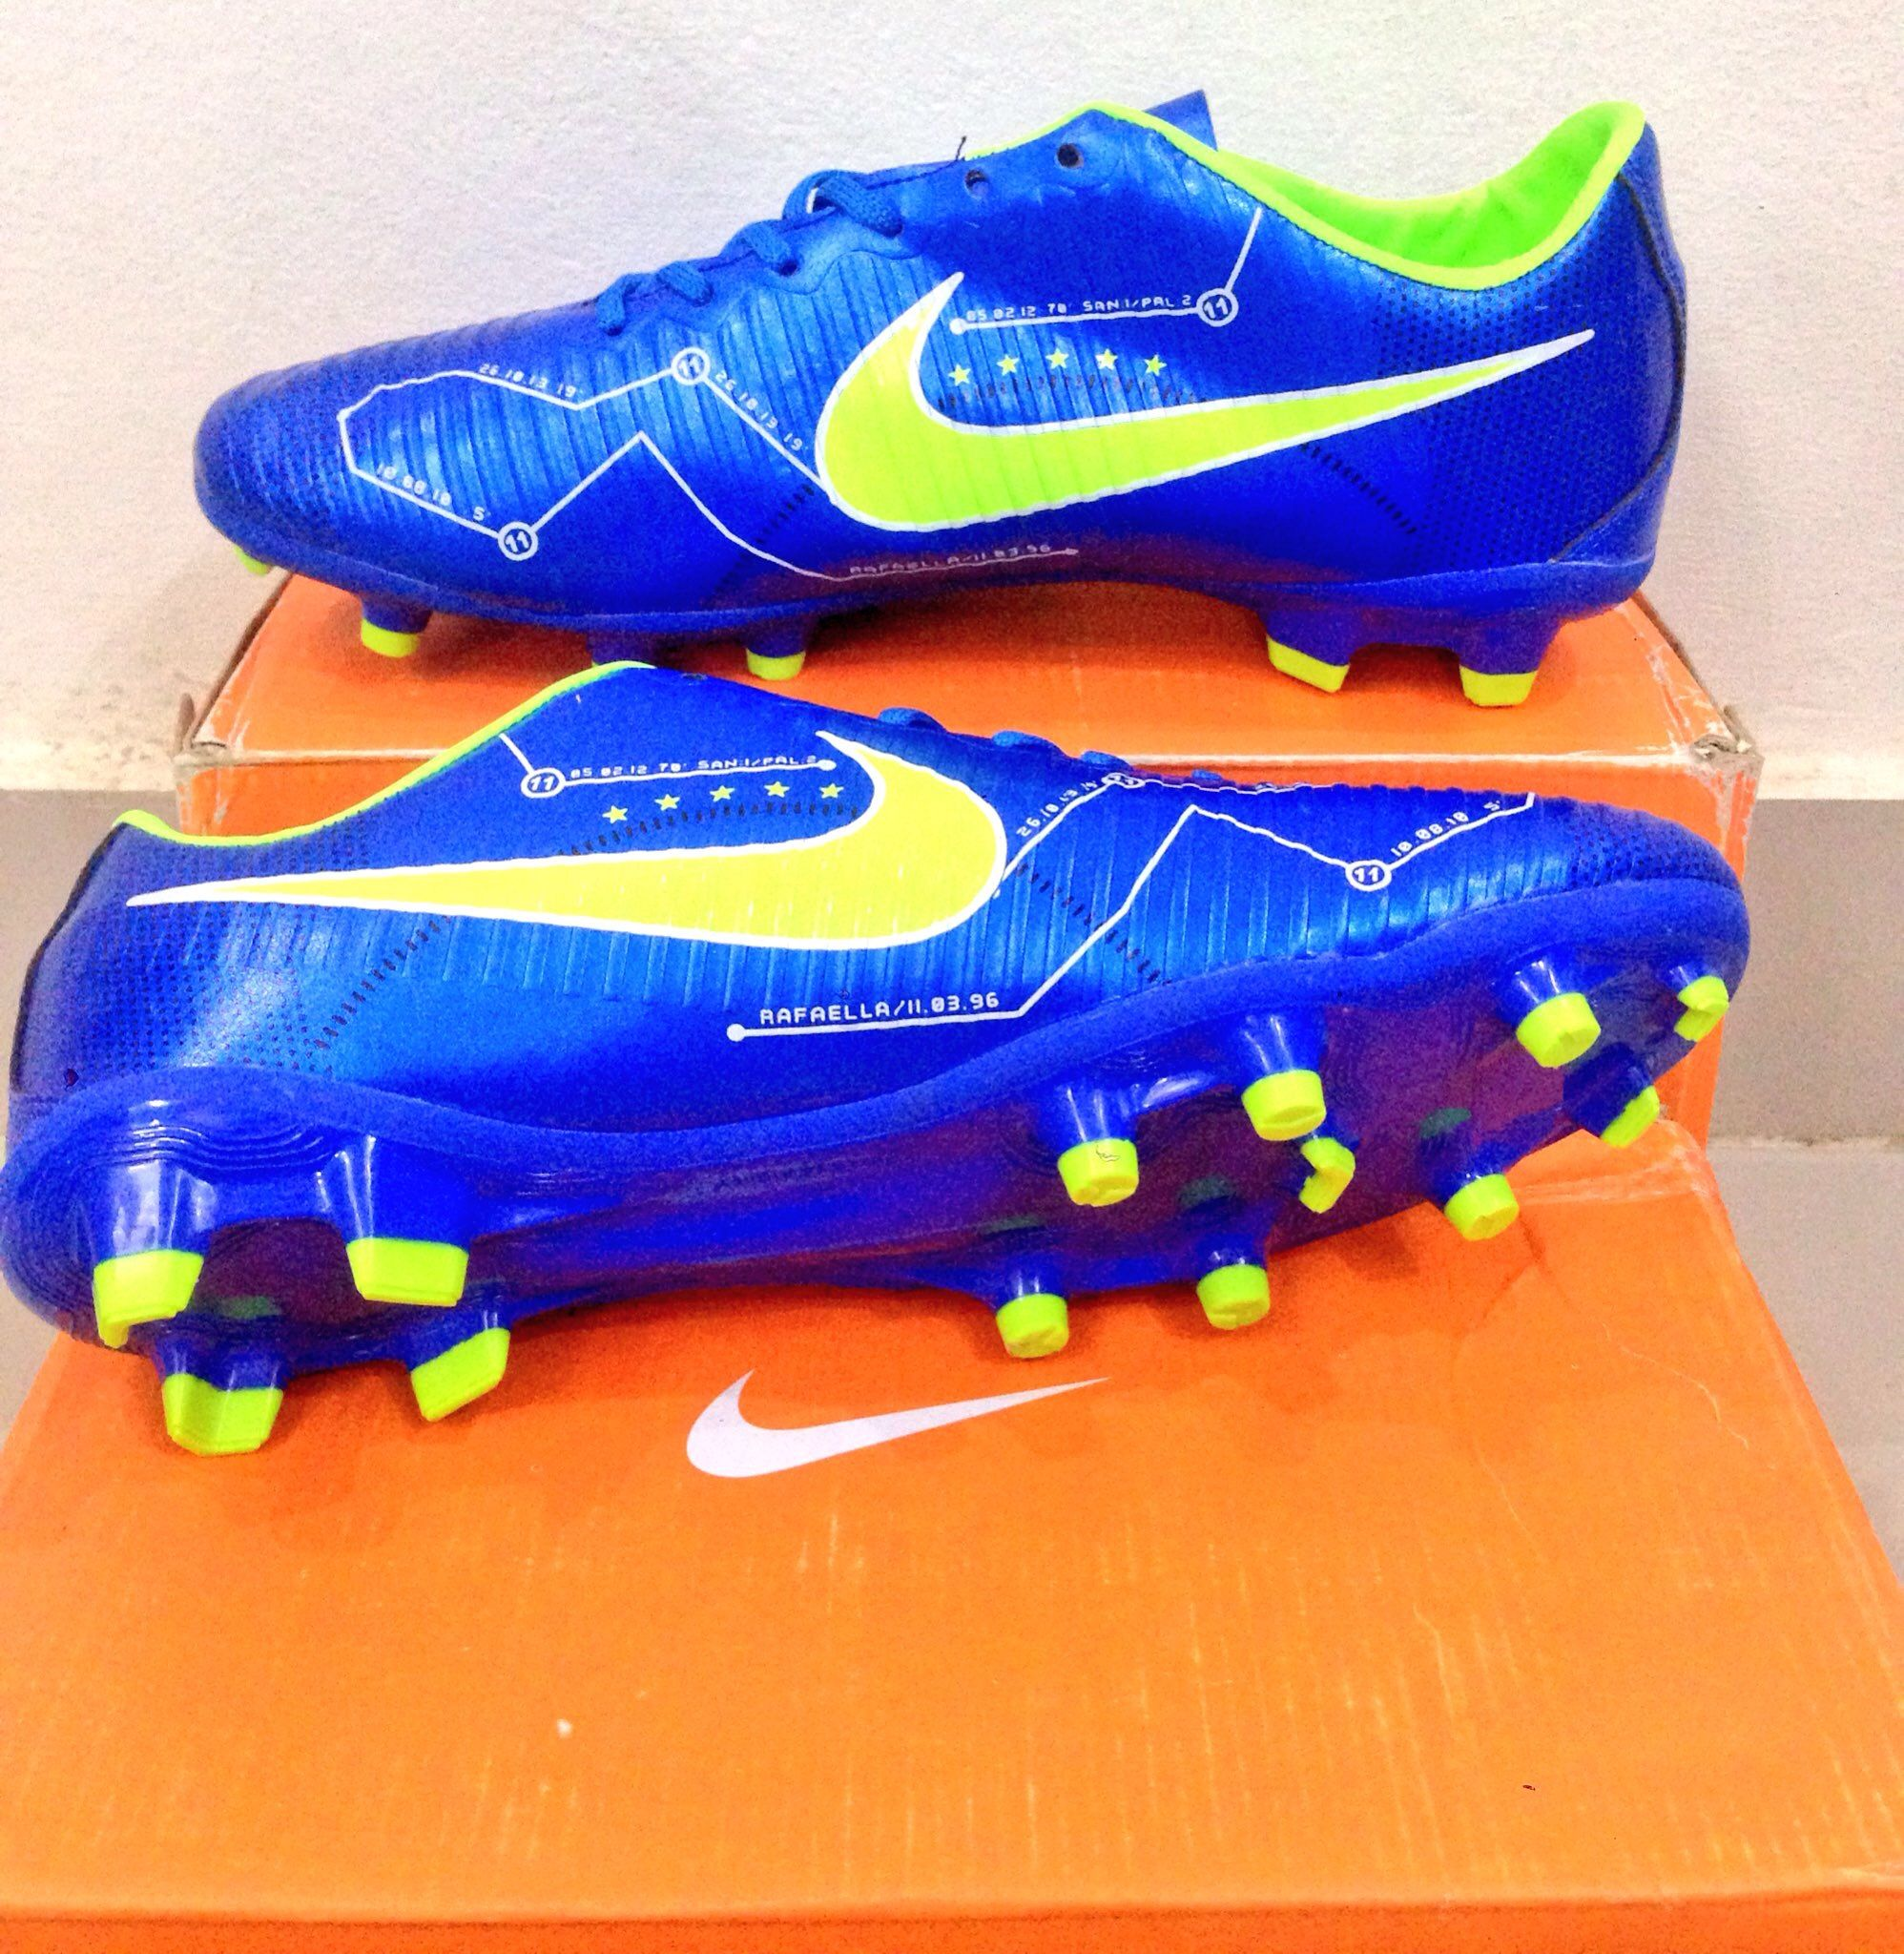 online retailer 1fbbb 832d2 ✓️Stock Available ⛹🏻 Nike Mercurial Football Toes Price Rs.1999   Size